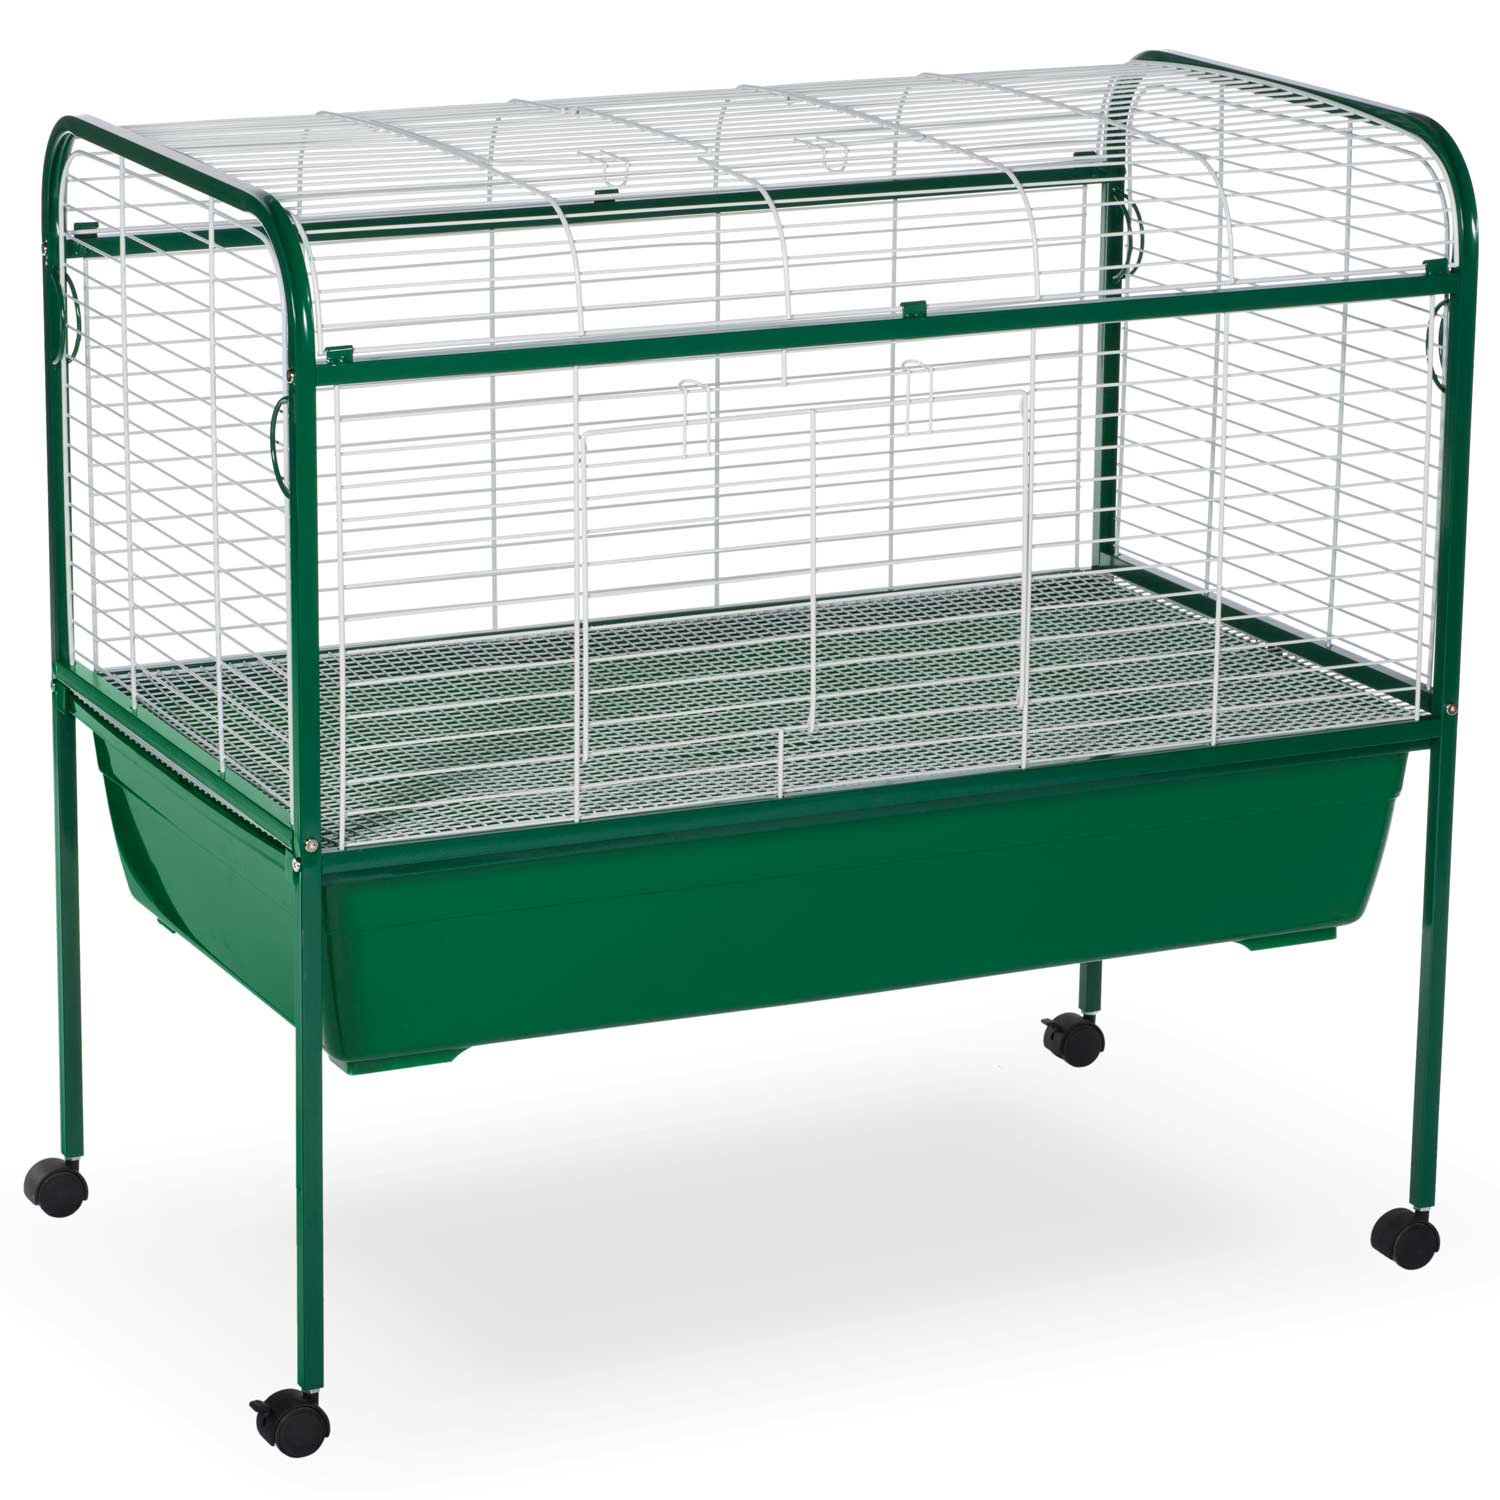 Prevue Hendryx Green & White Small Animal Cage with Stand